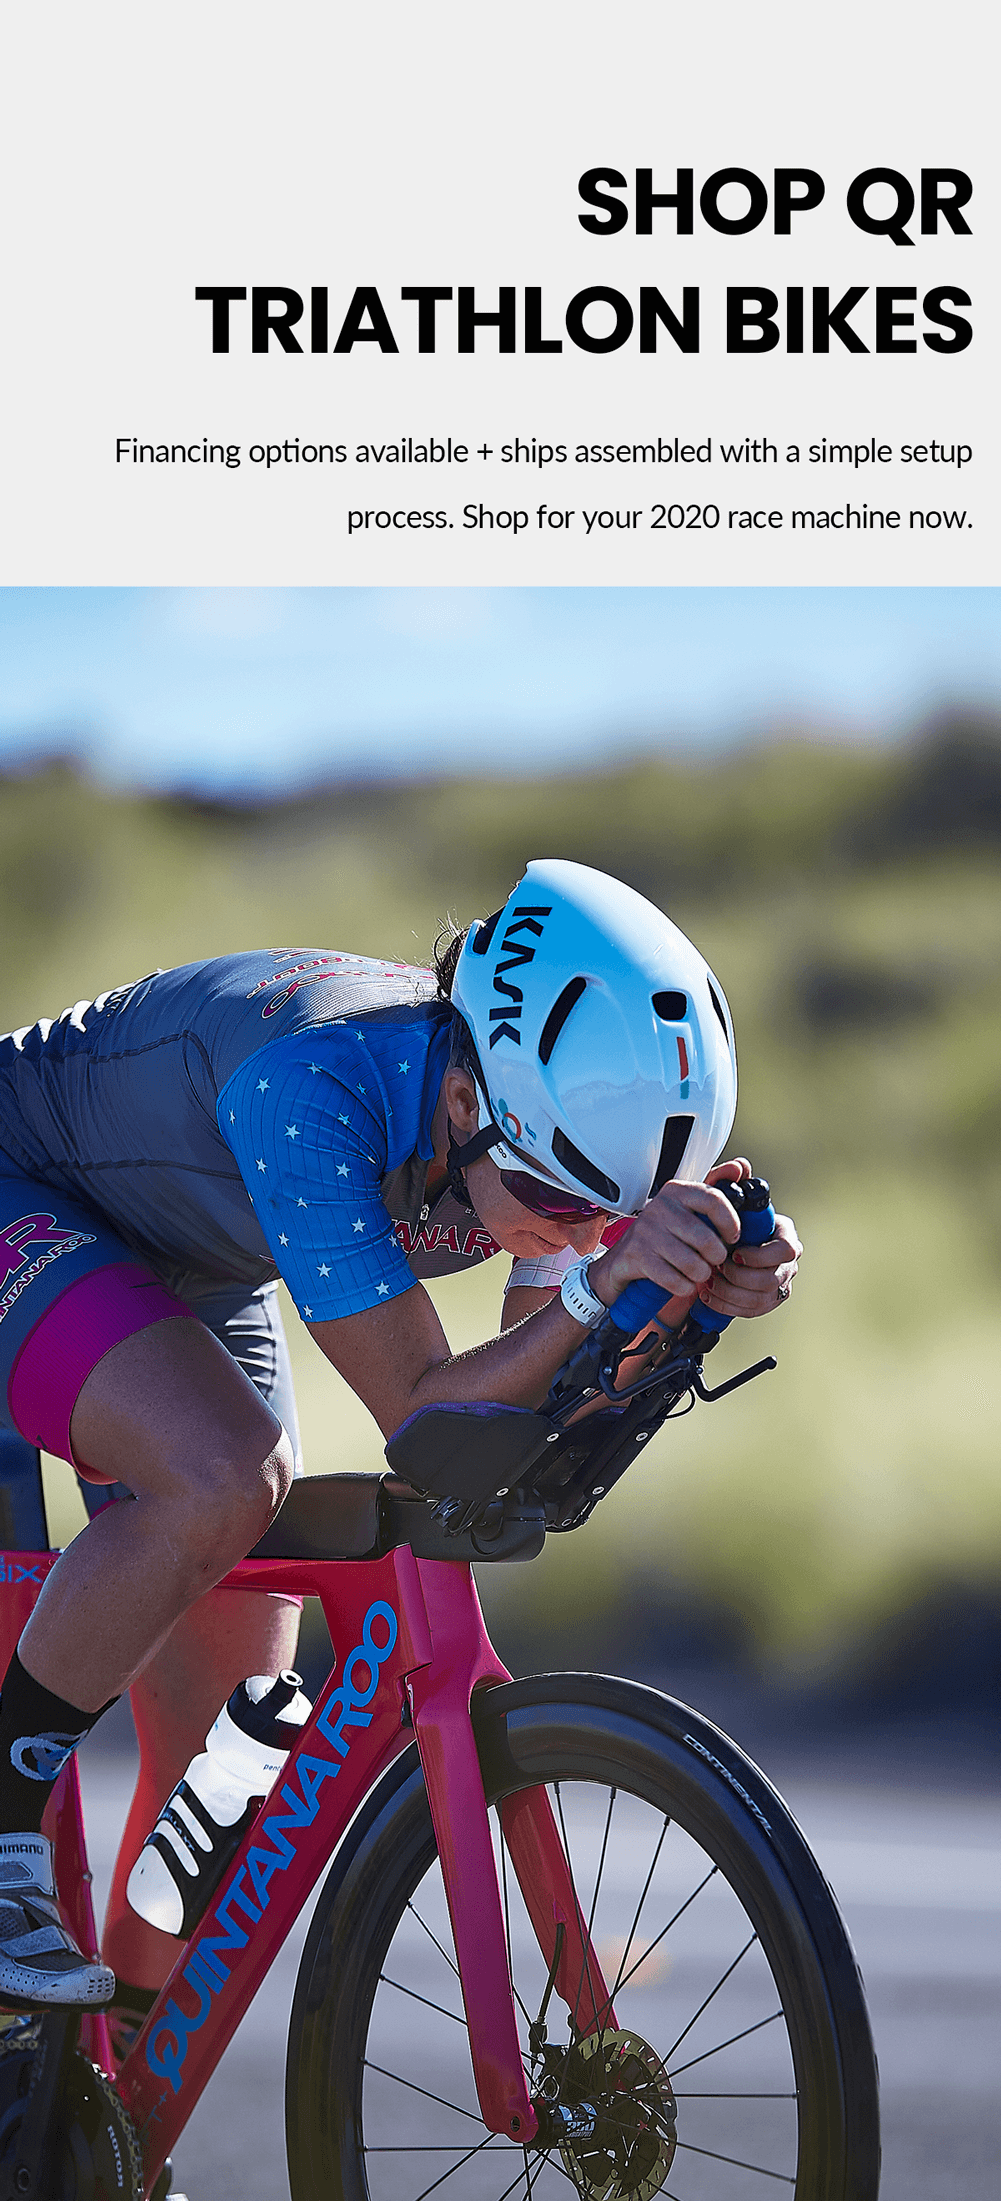 Shop Quintana Roo triathlon bikes: financing options available + ships assembled with a simple setup process. Shop for your 2020 race machine now.